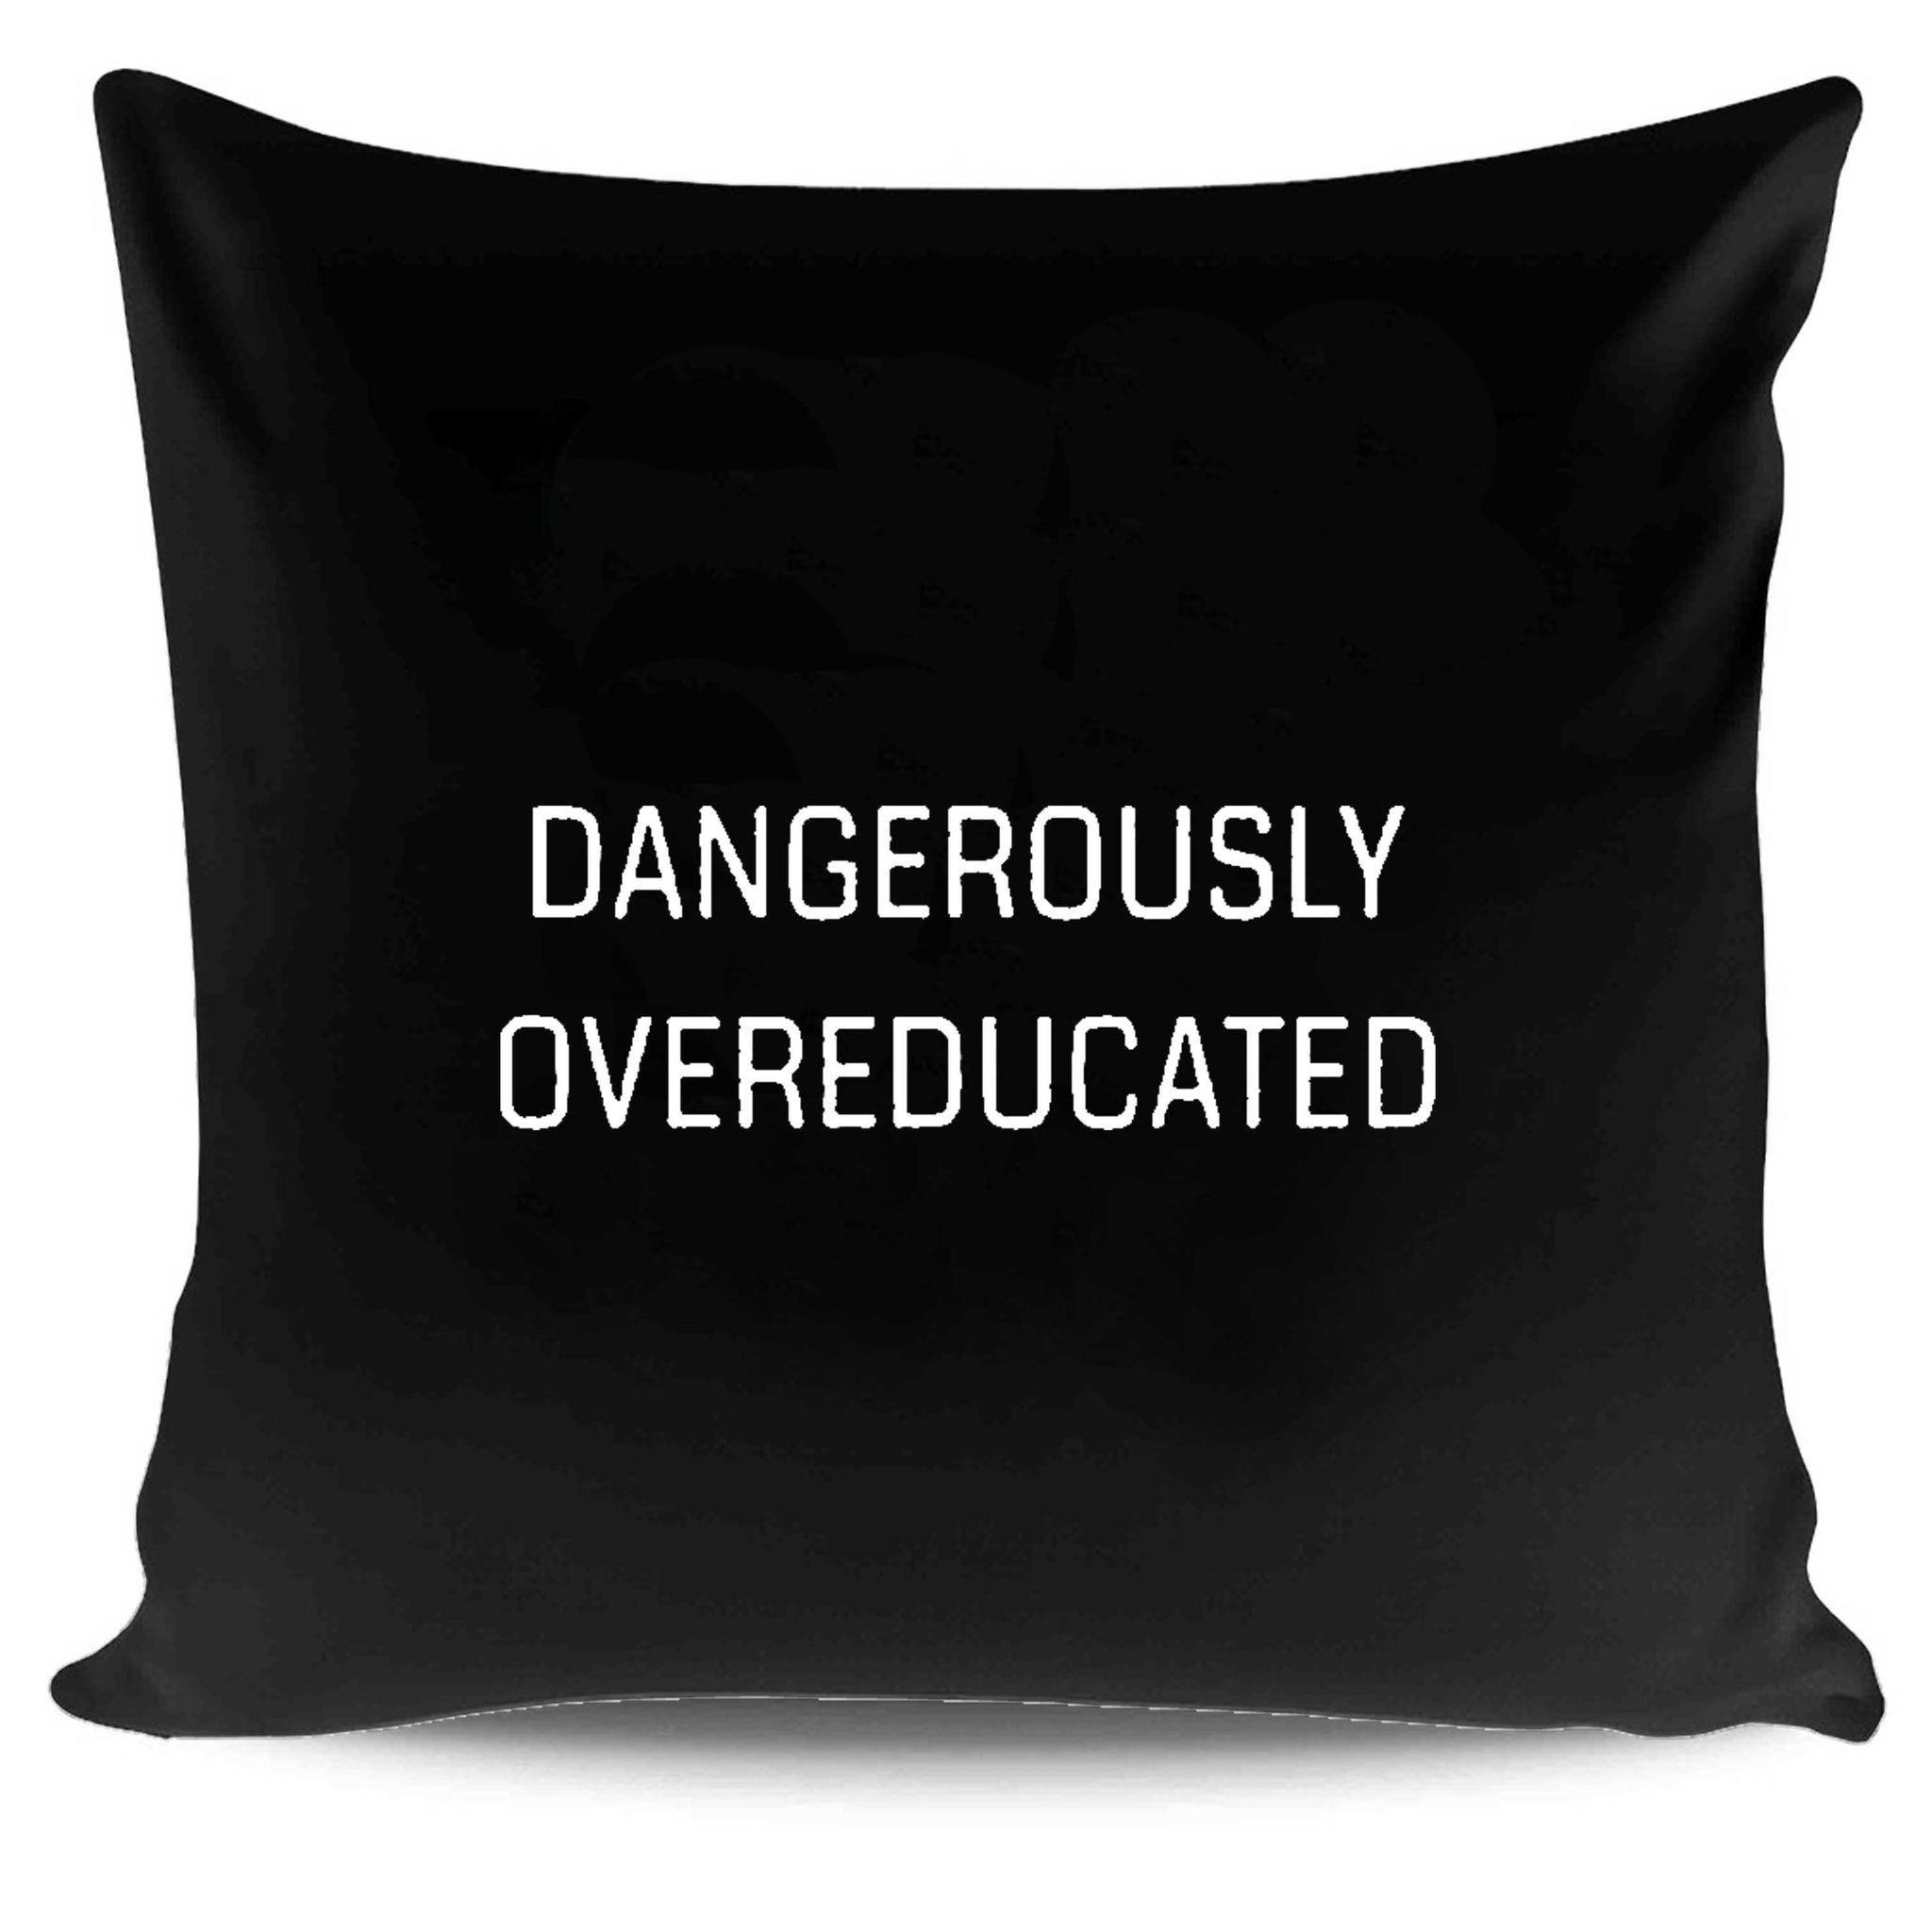 Graduate Student Gifts Dangerously Overeducated Pillow Case Cover